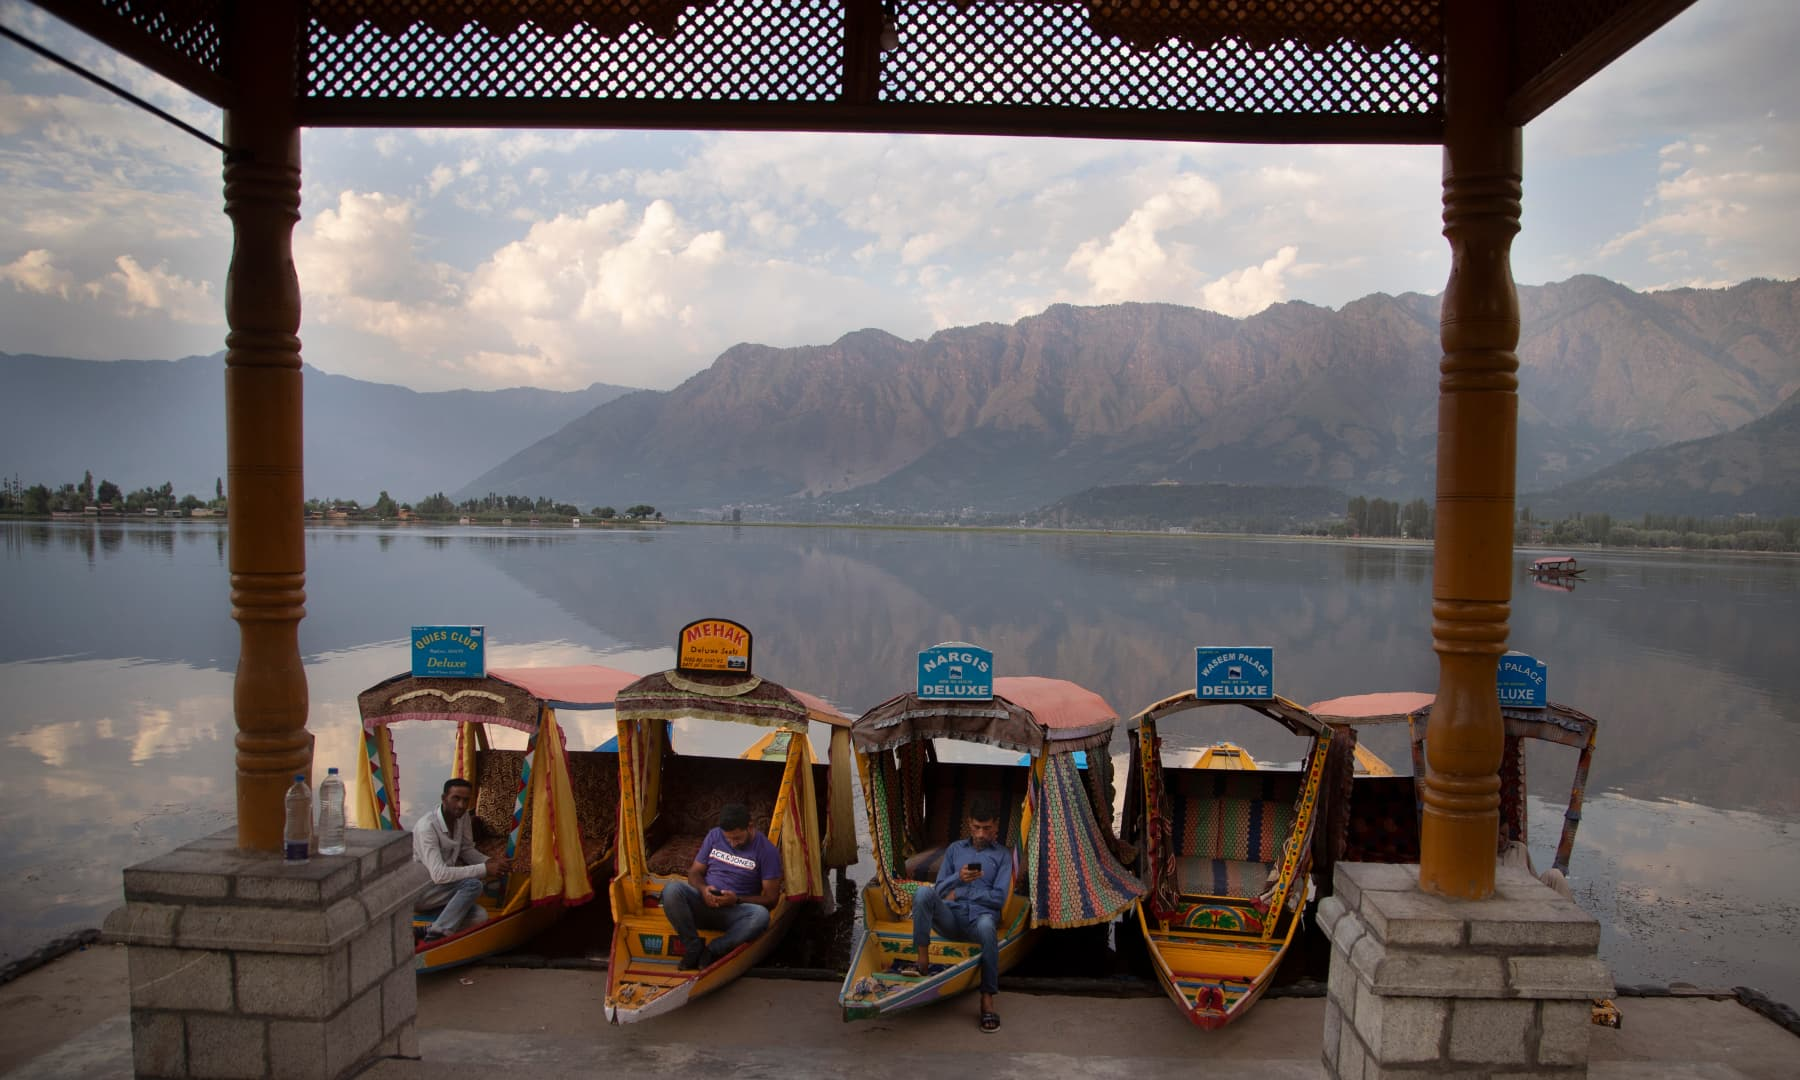 Kashmiri boatmen rest as they wait for customers on the deserted banks of the Dal Lake in Srinagar, July 20. — AP